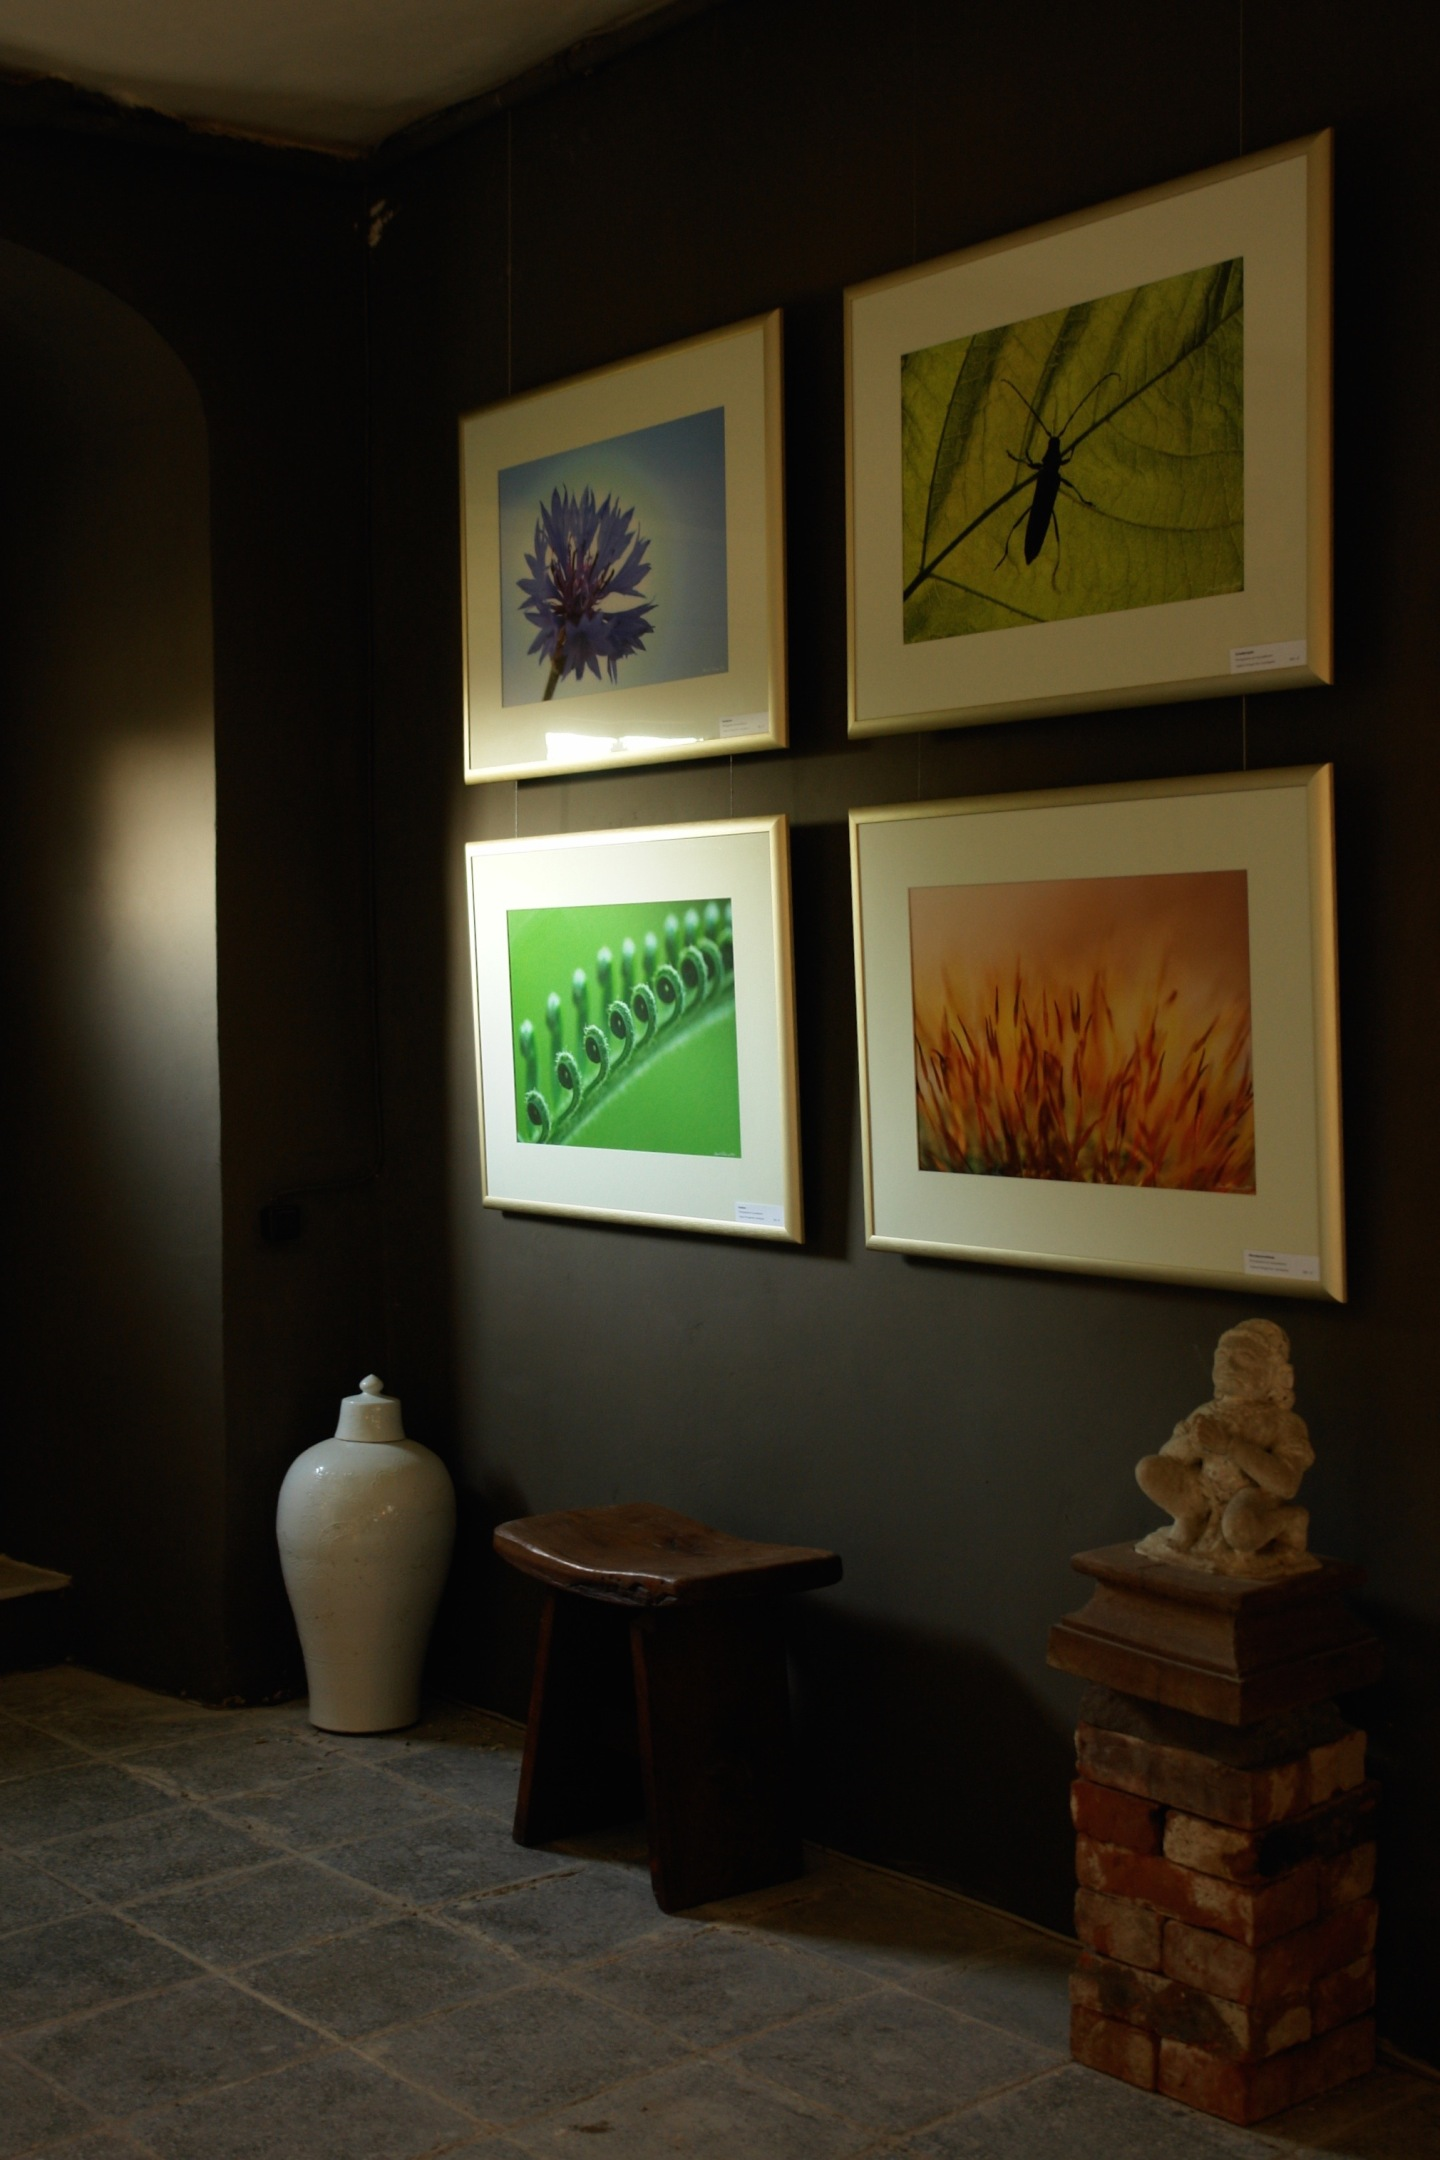 Entrance Hall gallery is now open